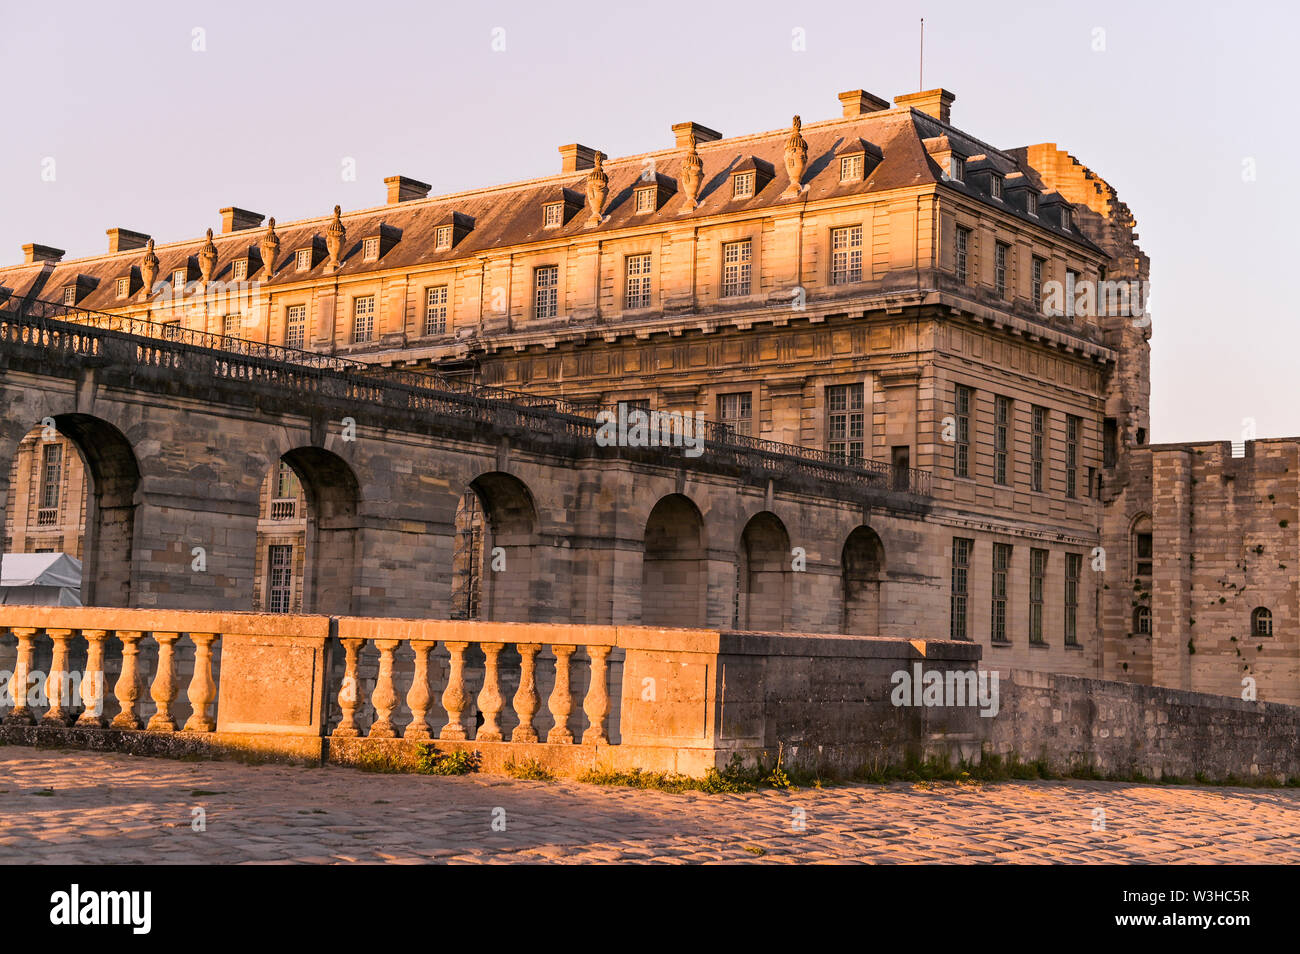 Vincennes Castle at sunset in the rays of the sun. An ancient castle in the south of France. Architecture and travel - Stock Image